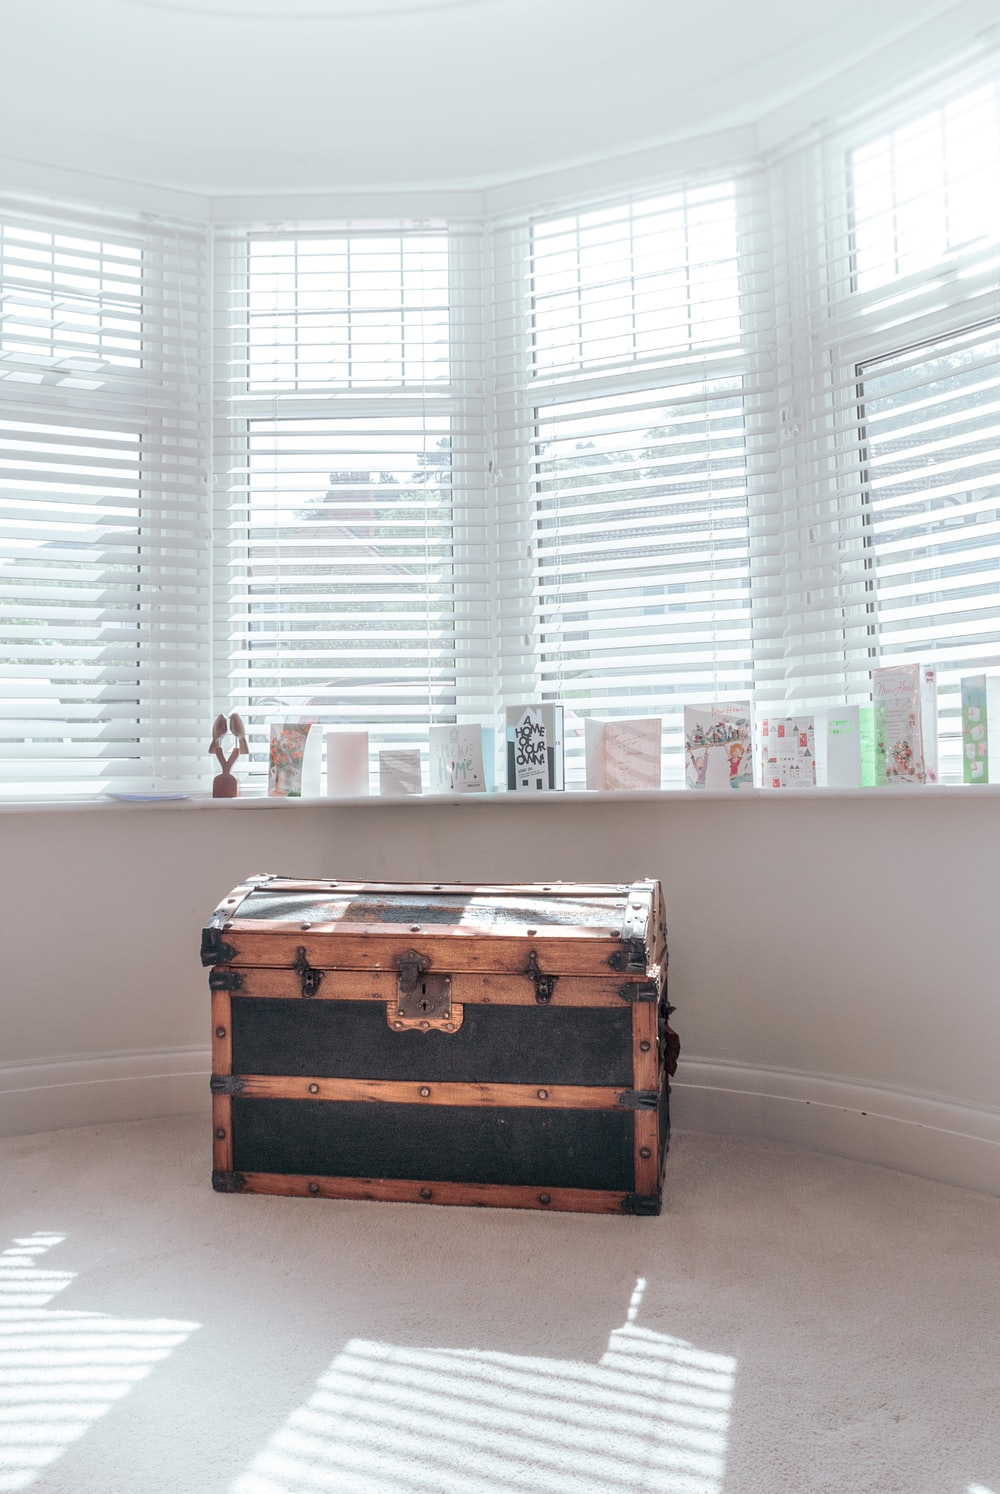 brown wooden chest box near white window blinds